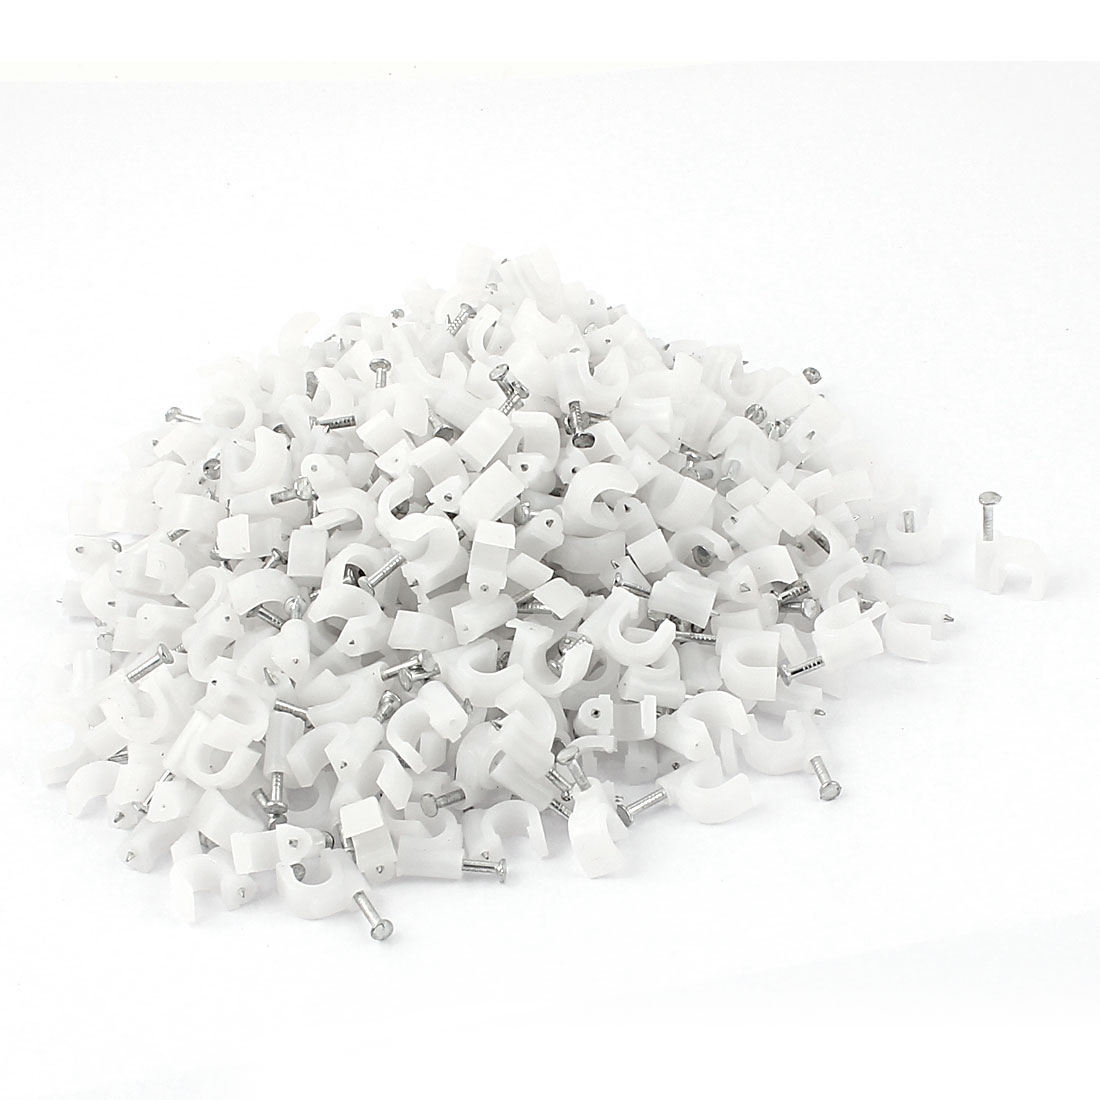 Coax Cat5 Cat6 Cable Plastic 5mm Nail Clips Clamps White 350pcs